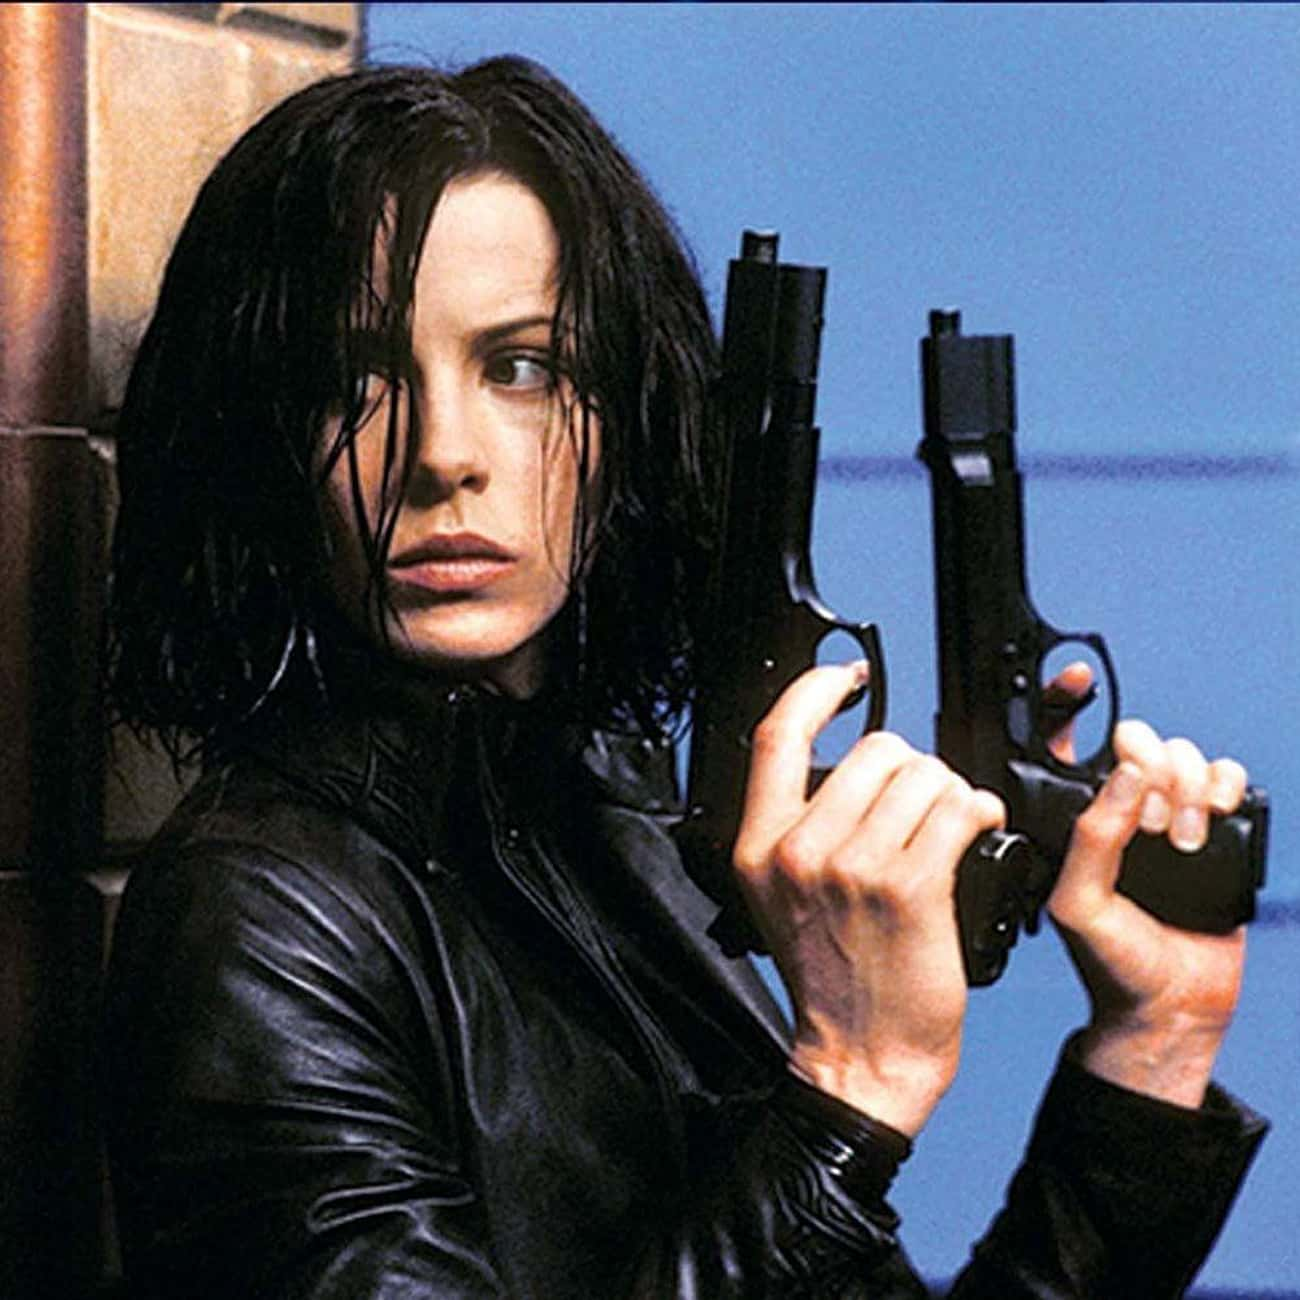 Selene - 'Underworld' is listed (or ranked) 3 on the list The Most Lethal Female Assassins in Film & TV